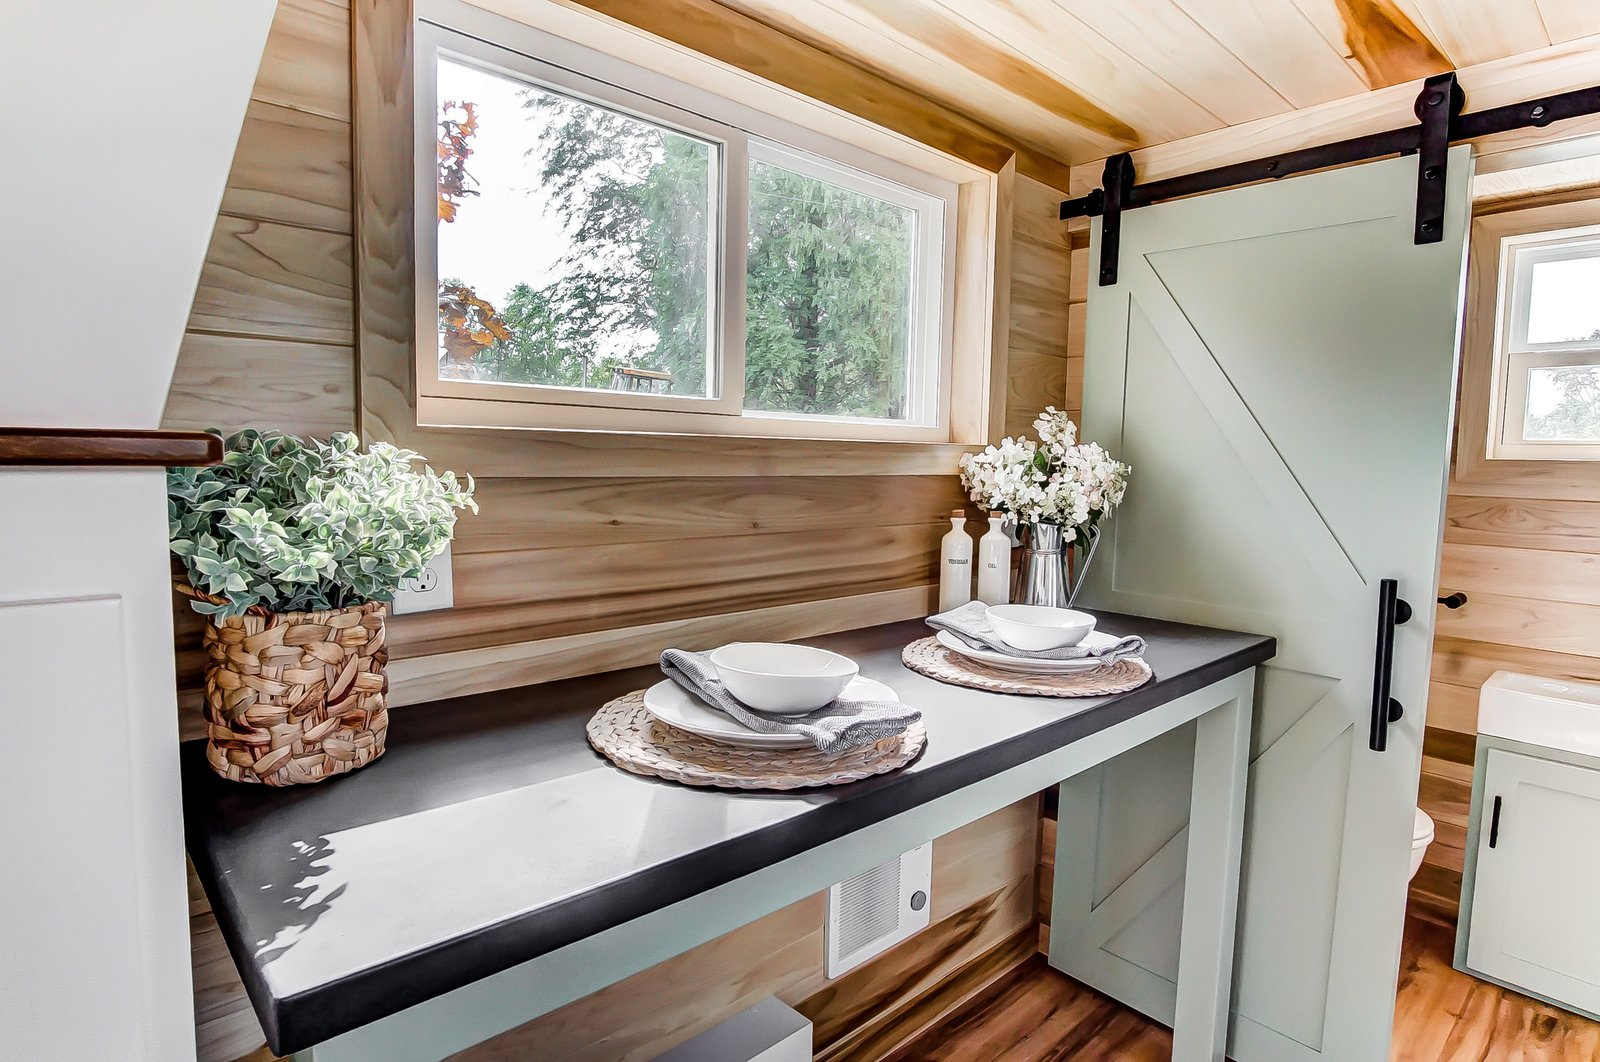 Dining Room, Table, and Medium Hardwood Floor The Clover's interior walls are finished in poplar wood, and its floors are covered in vinyl.    Photo 7 of 11 in This 270-Square-Foot Tiny Home Is Now Up For Grabs at $89K